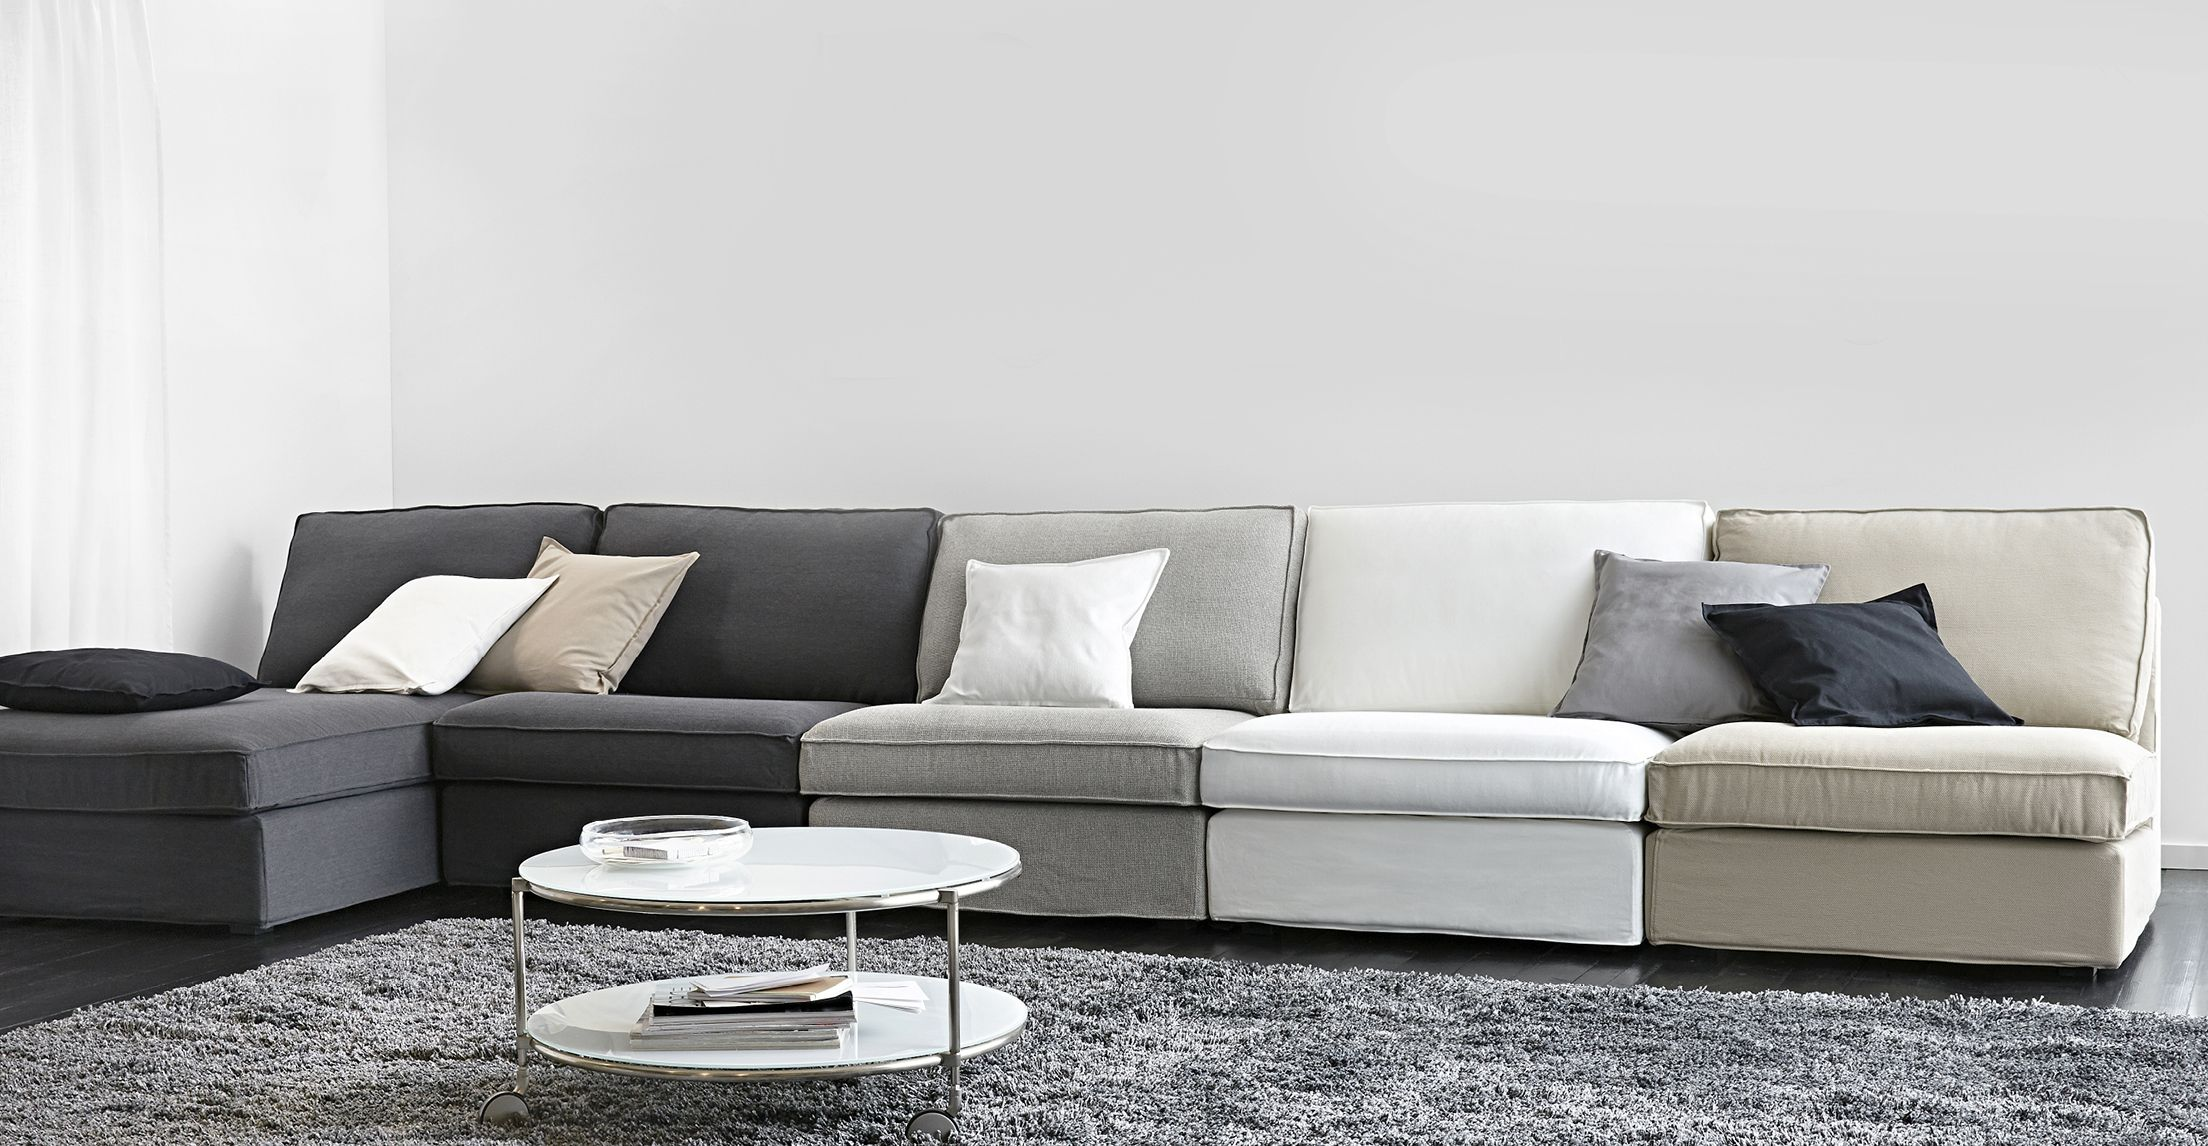 kivik ikea Google Search Furniture Sofas